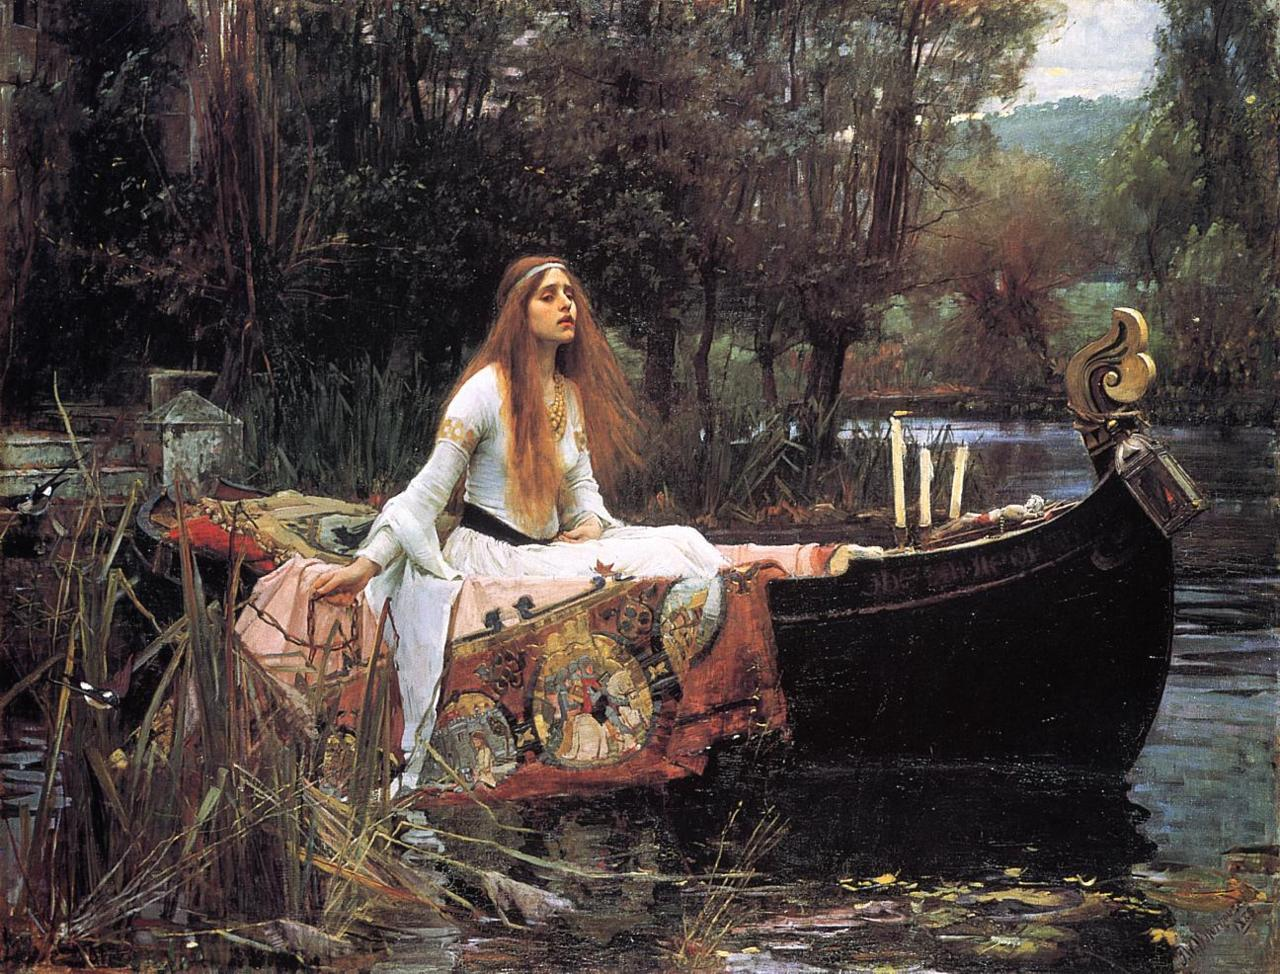 The Lady of Shallot (1888) by John William Waterhouse